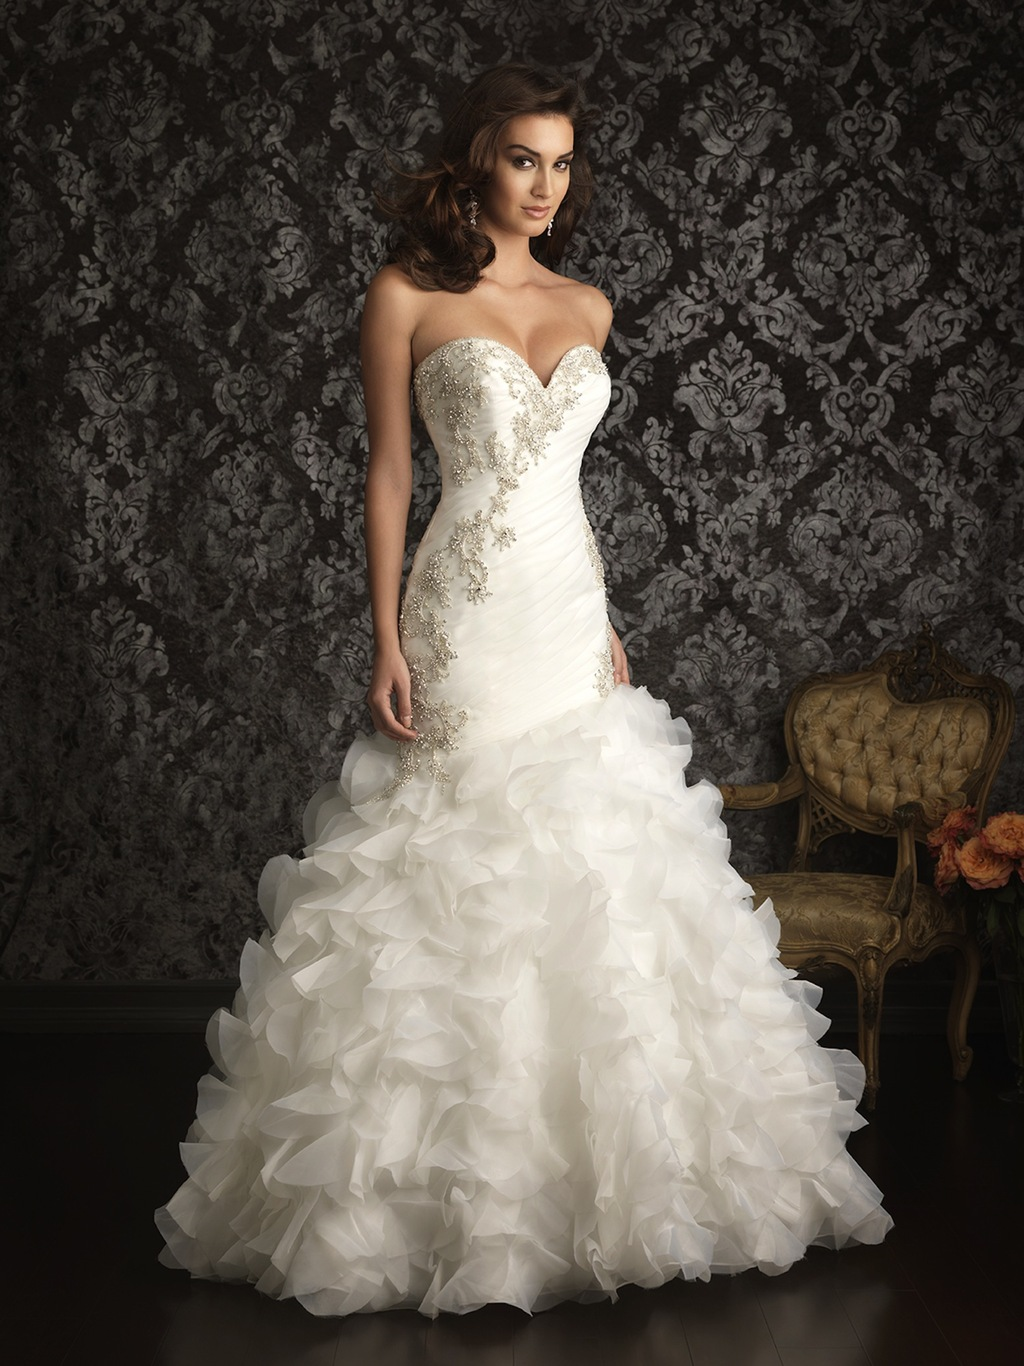 2013-allure-bridals-wedding-dress-bridal-gown-allure-collection-2013-9012f.full